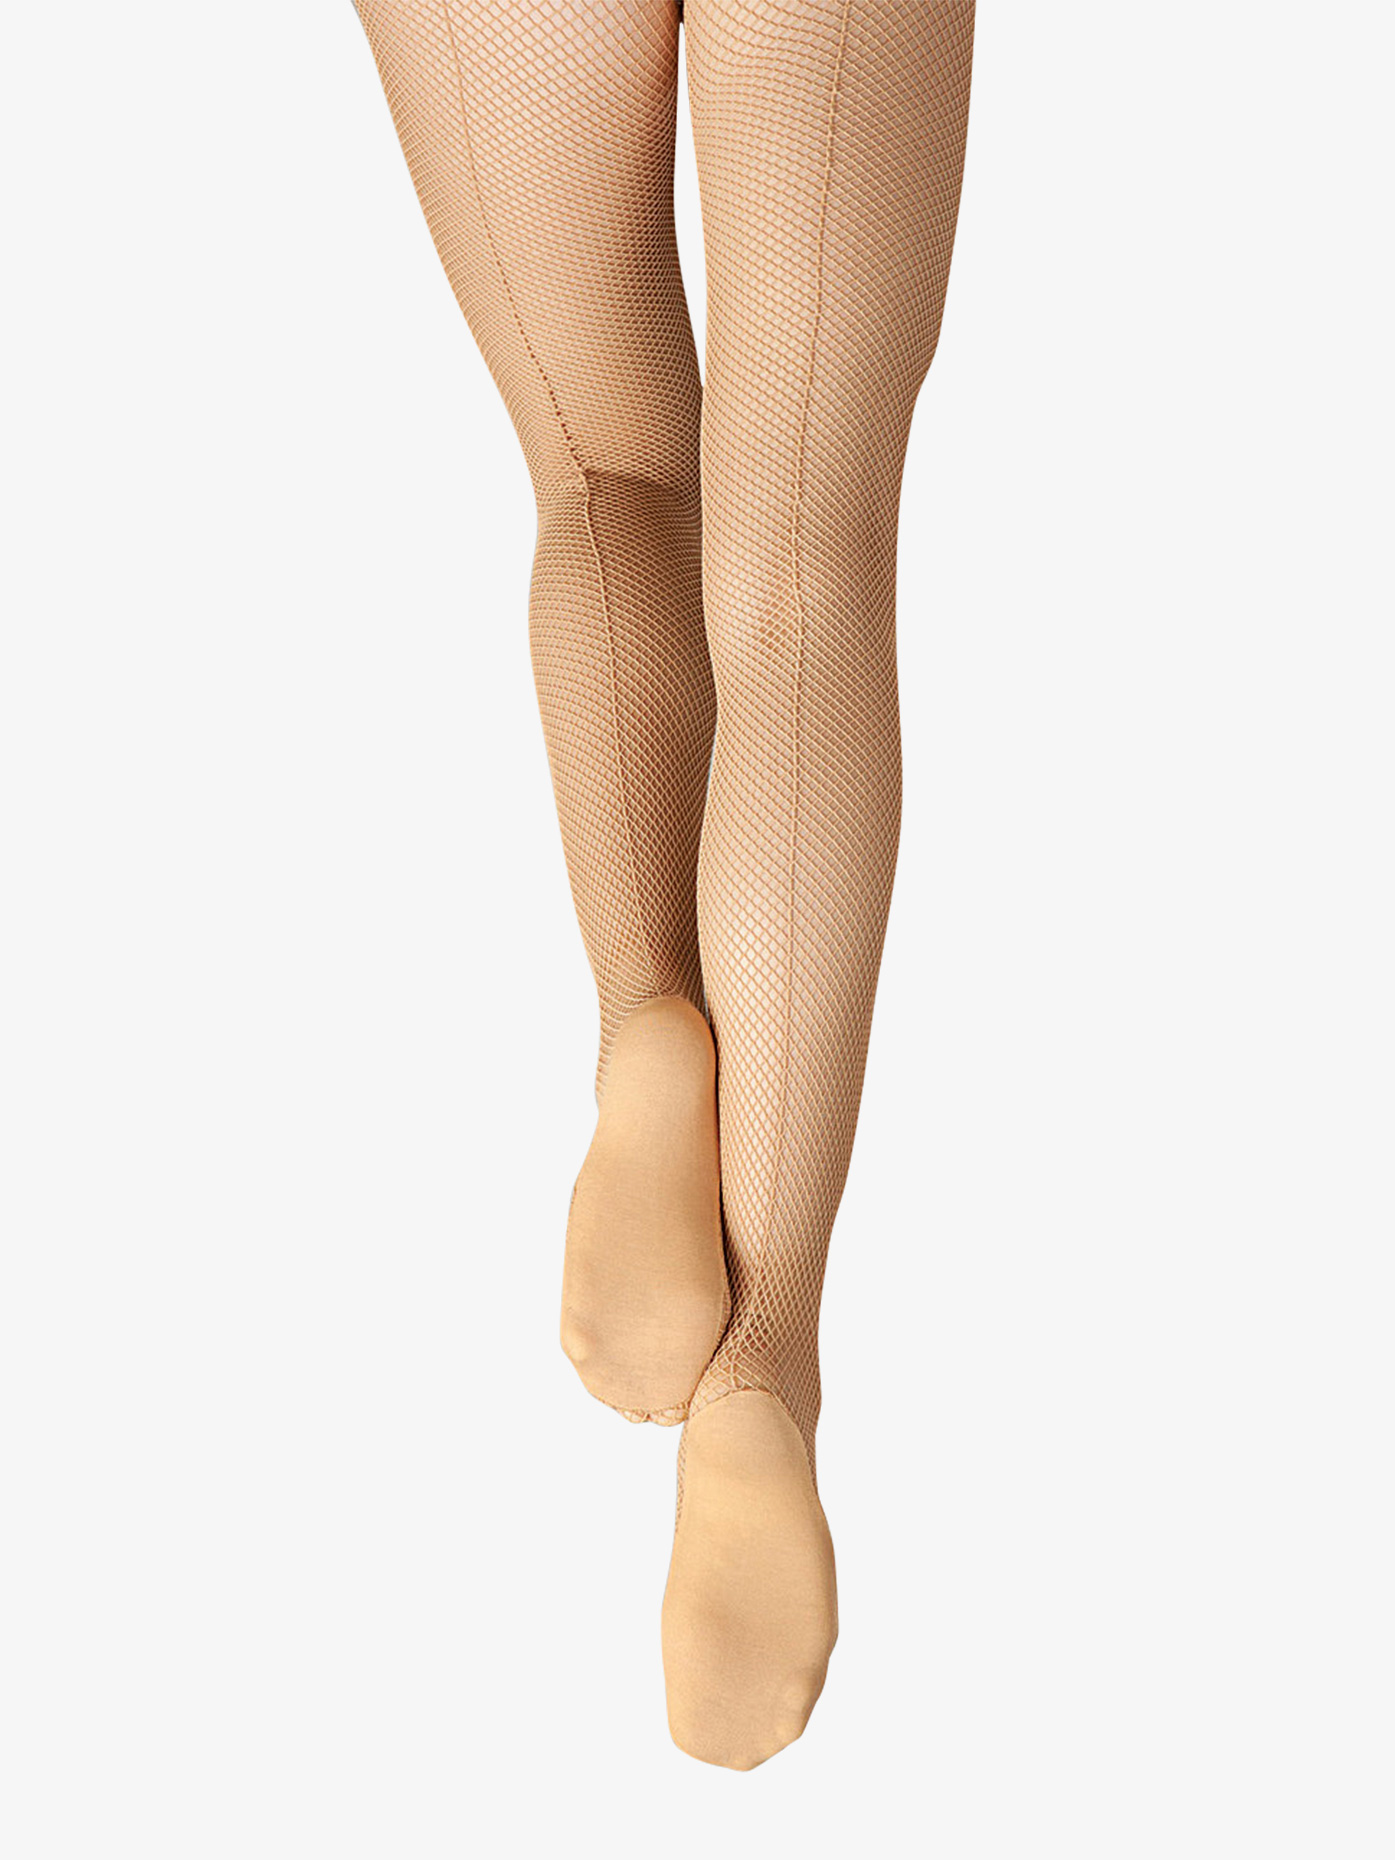 181db394b35f3 Professional Back Seam Fishnet Tights - Fishnet Tights | Capezio 3400 |  DiscountDance.com